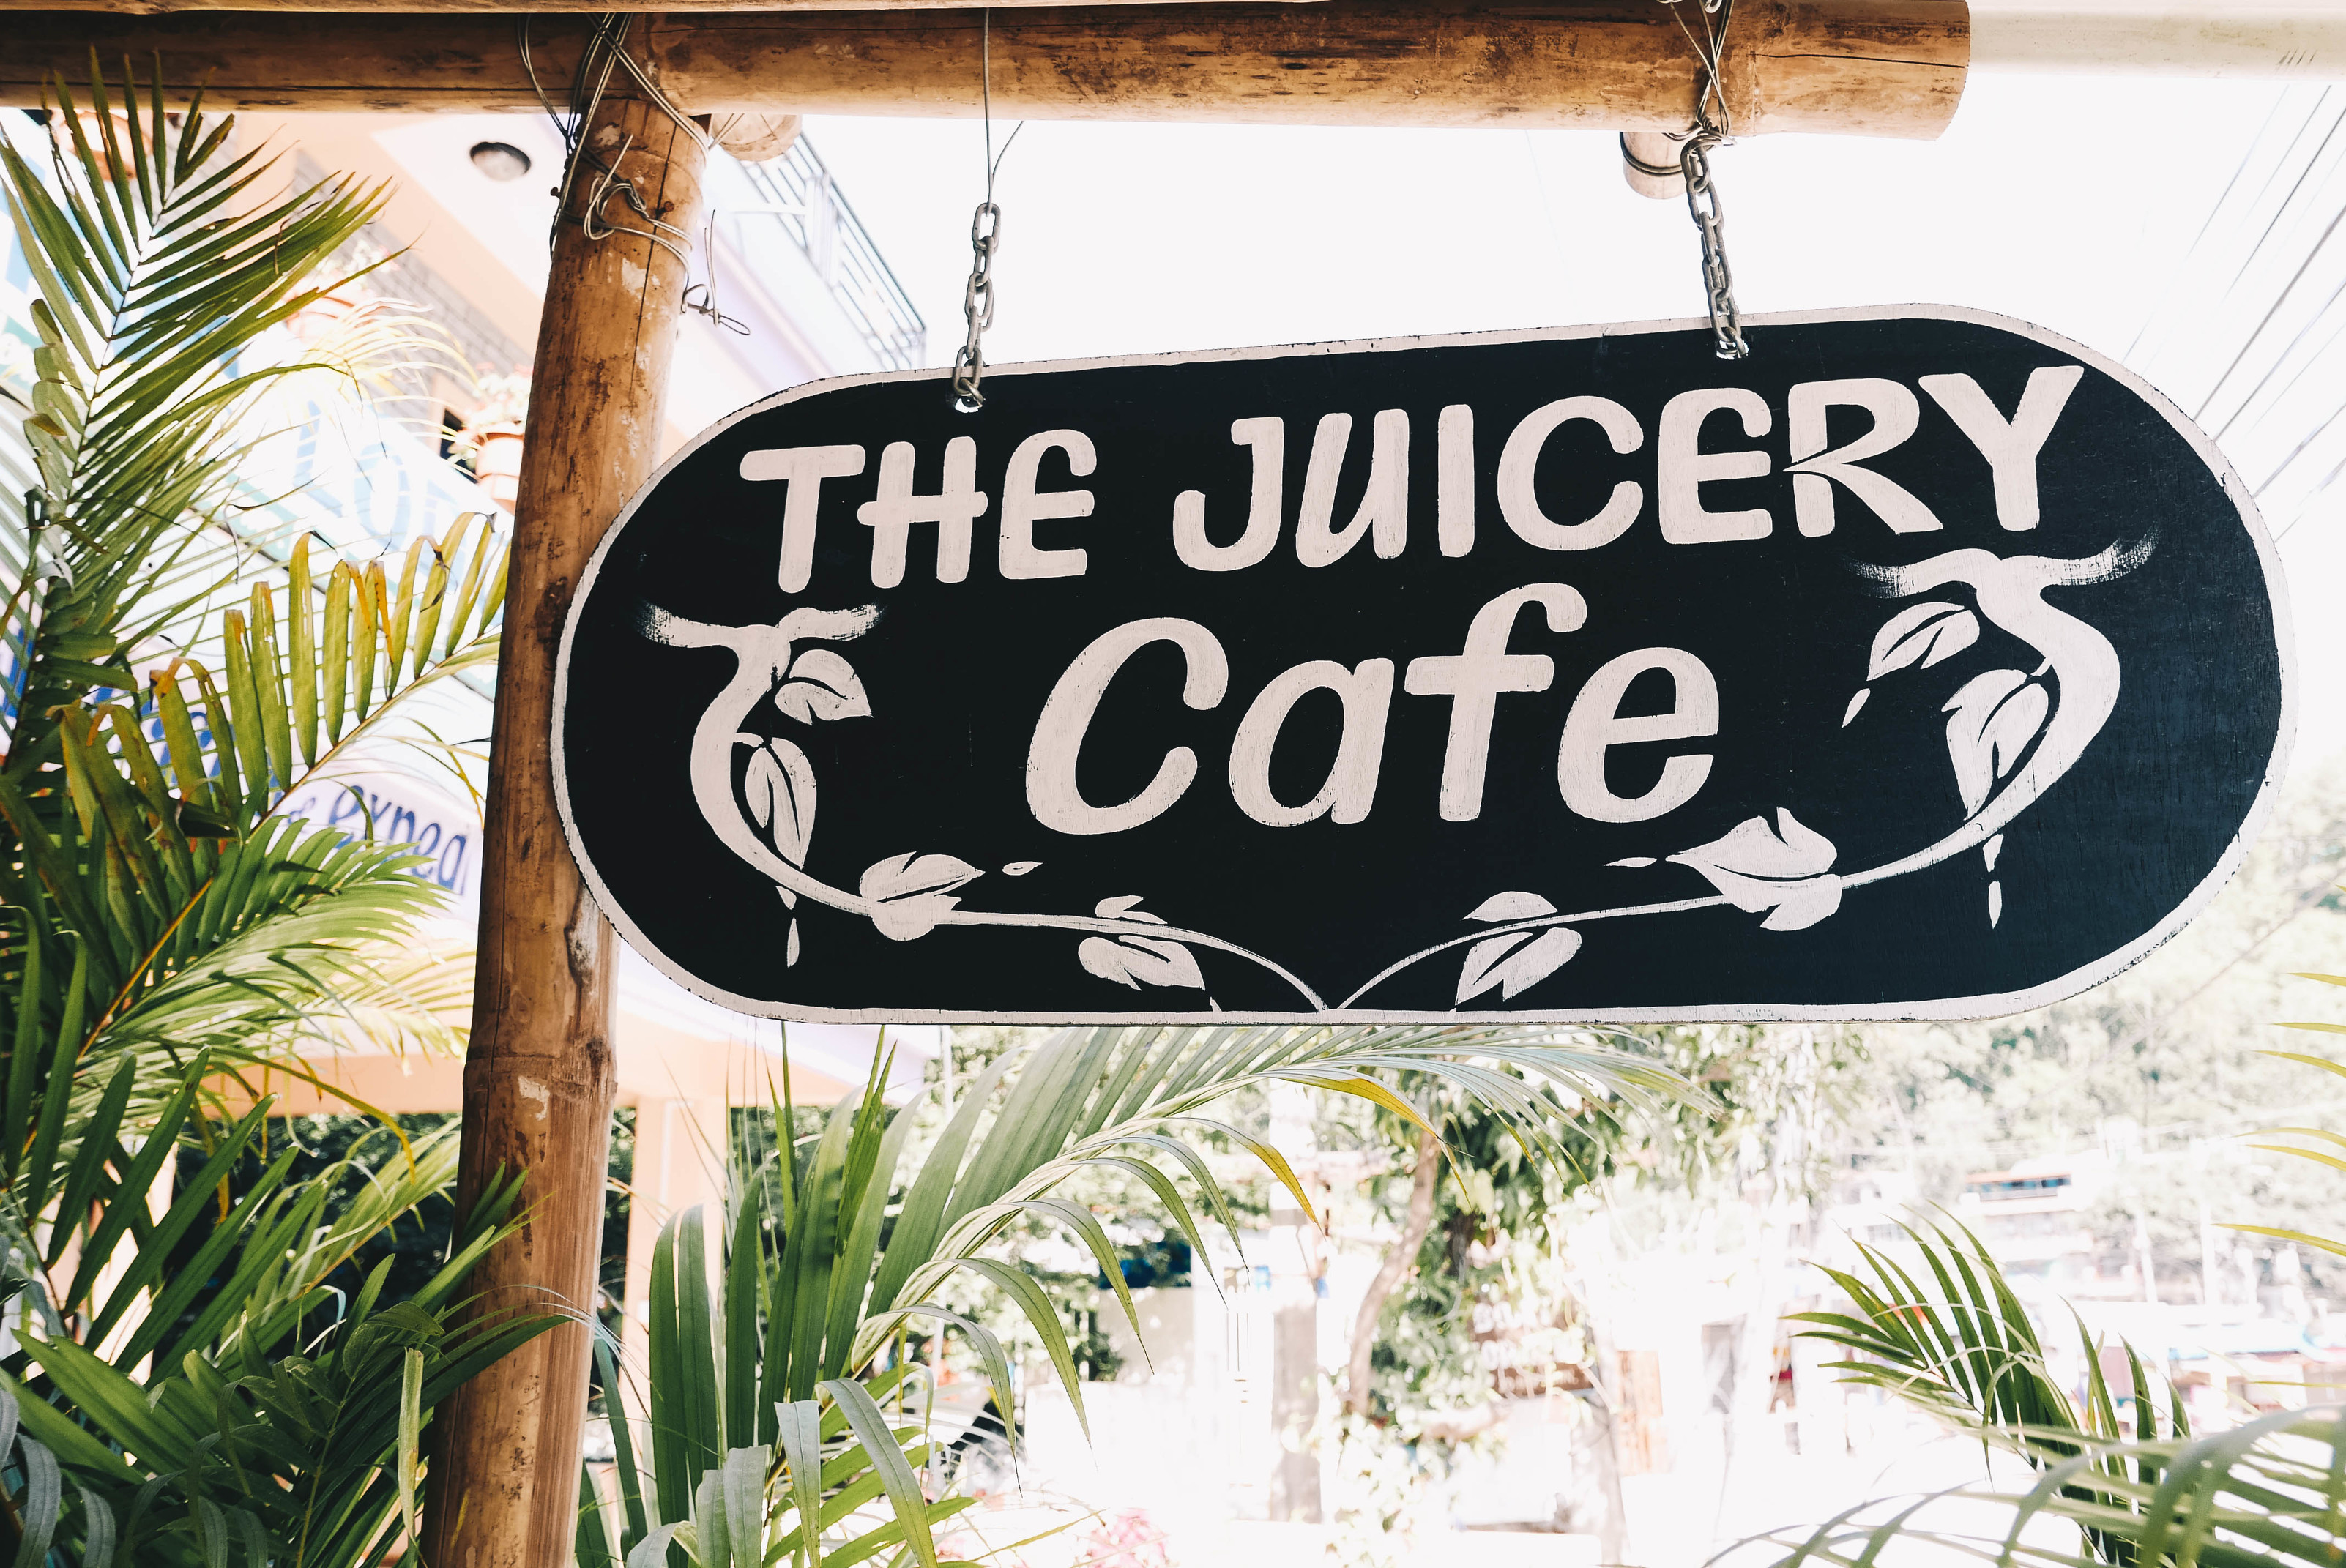 nepalis on juicery cafe